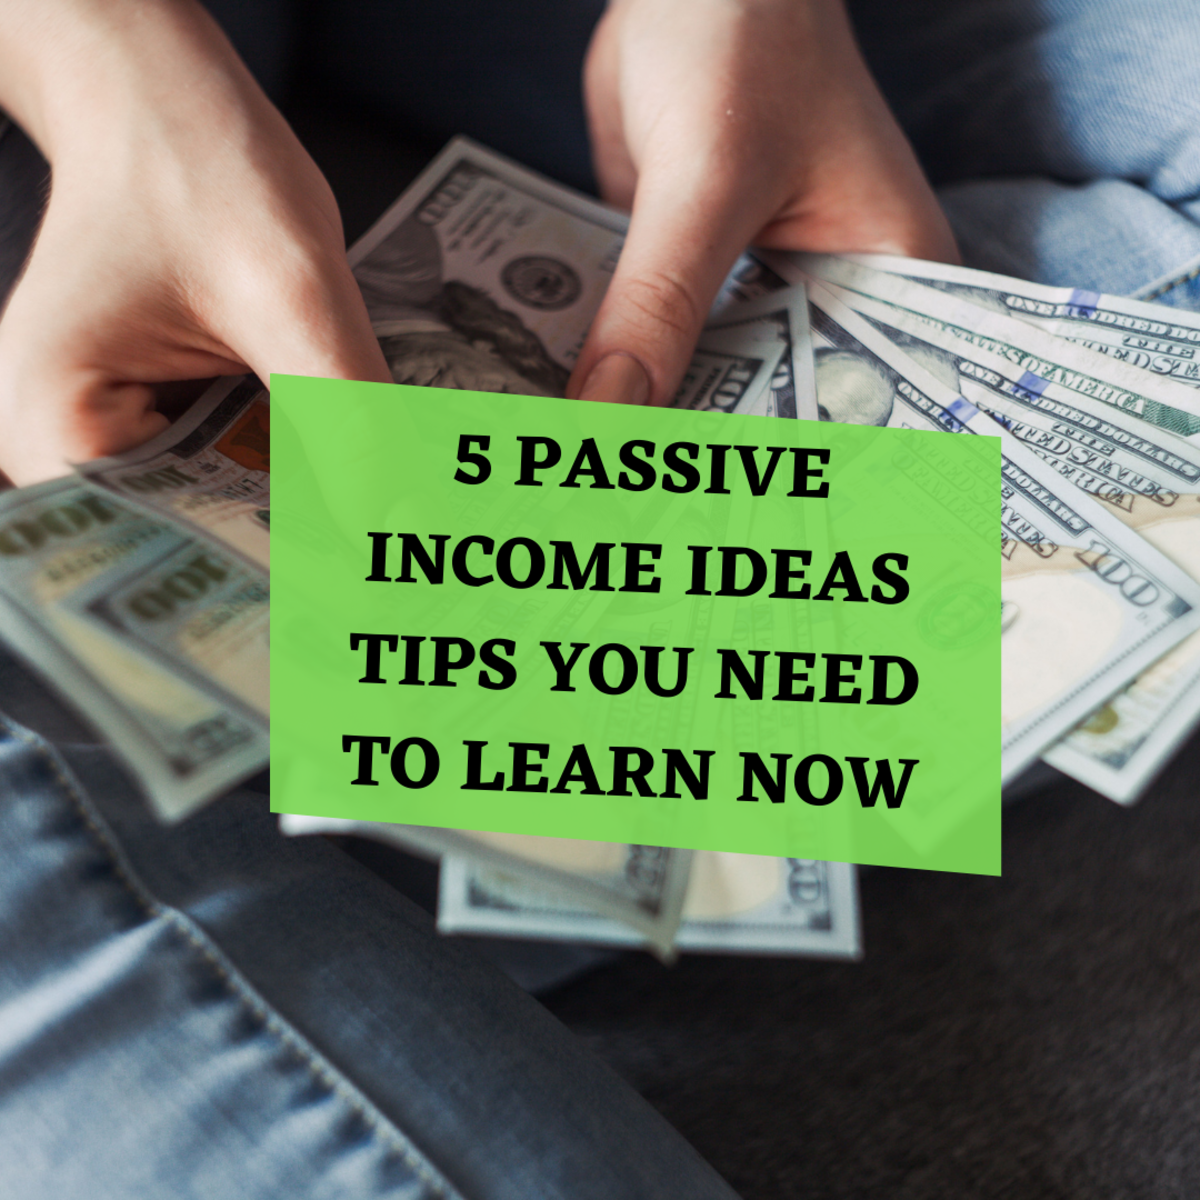 5 Passive Income Ideas Tips You Need To Learn Now